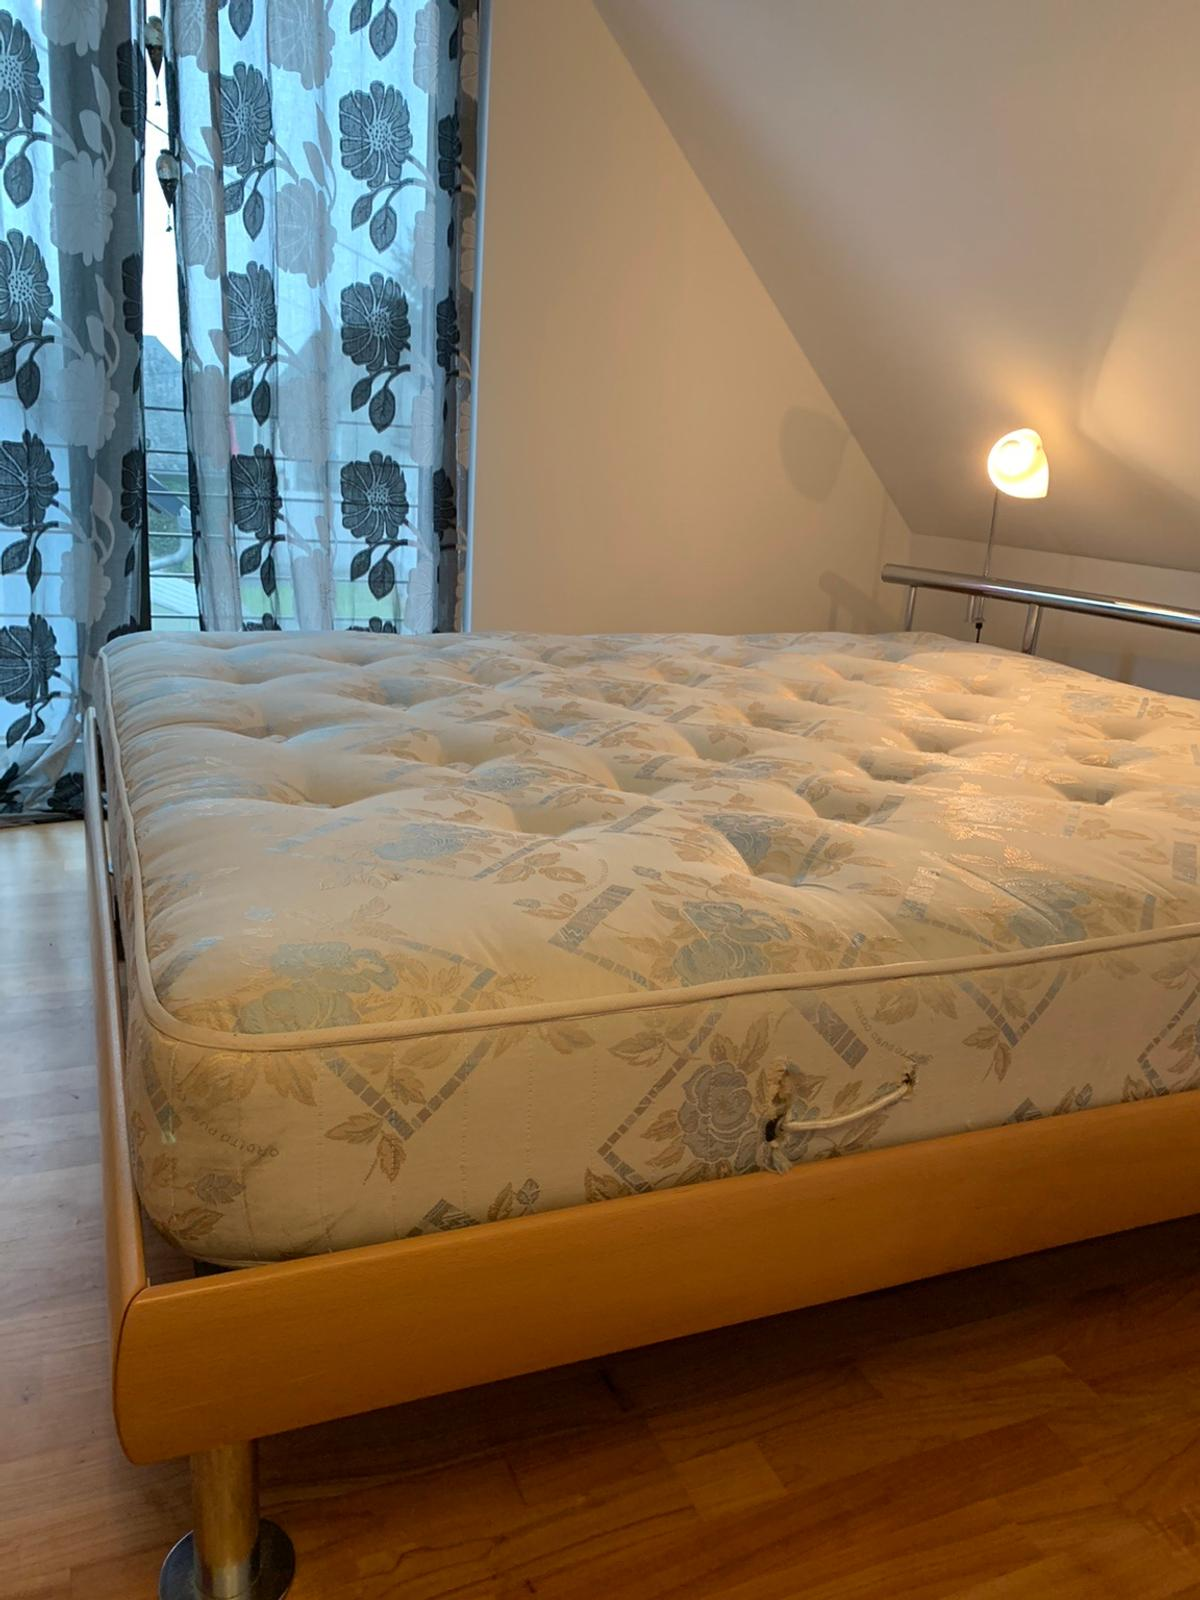 Bett 1 8 X 2 M In Montabaur For 60 00 For Sale Shpock